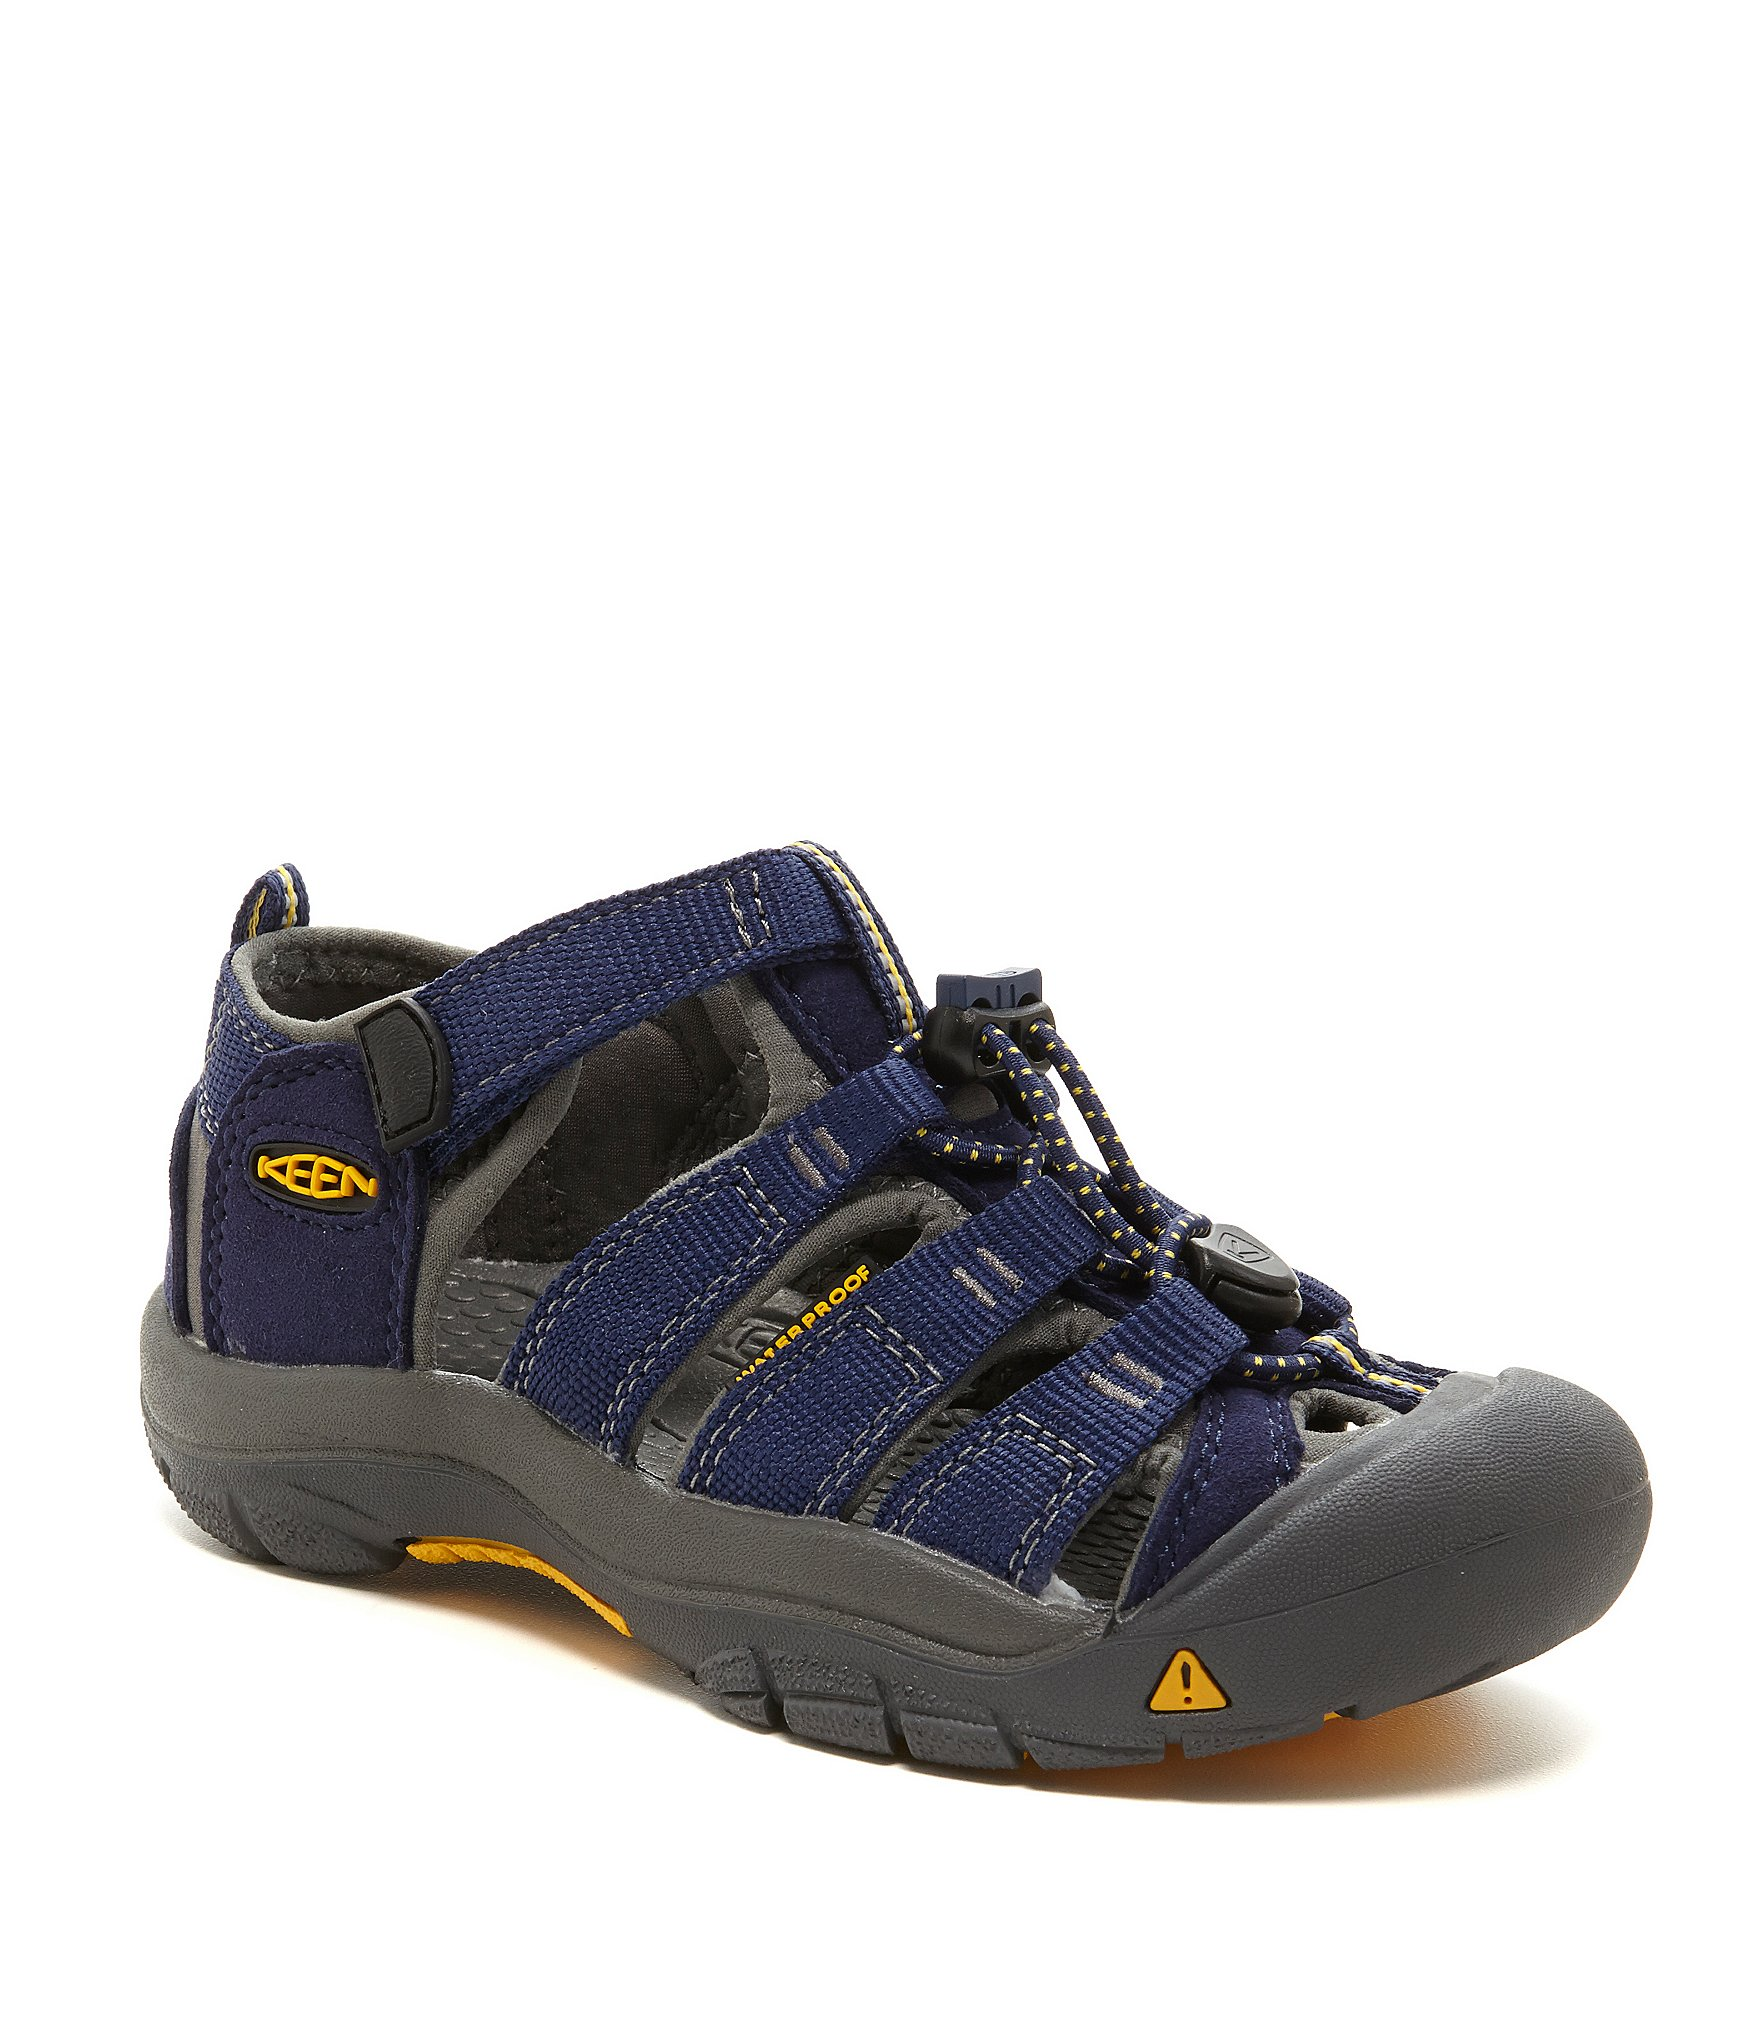 Clearance and Sale Shoes. Choose from popular name brands that have been reduced in price to sell fast. Brands like: Born, Saucony, Life Stride, Madden Girl and many more.